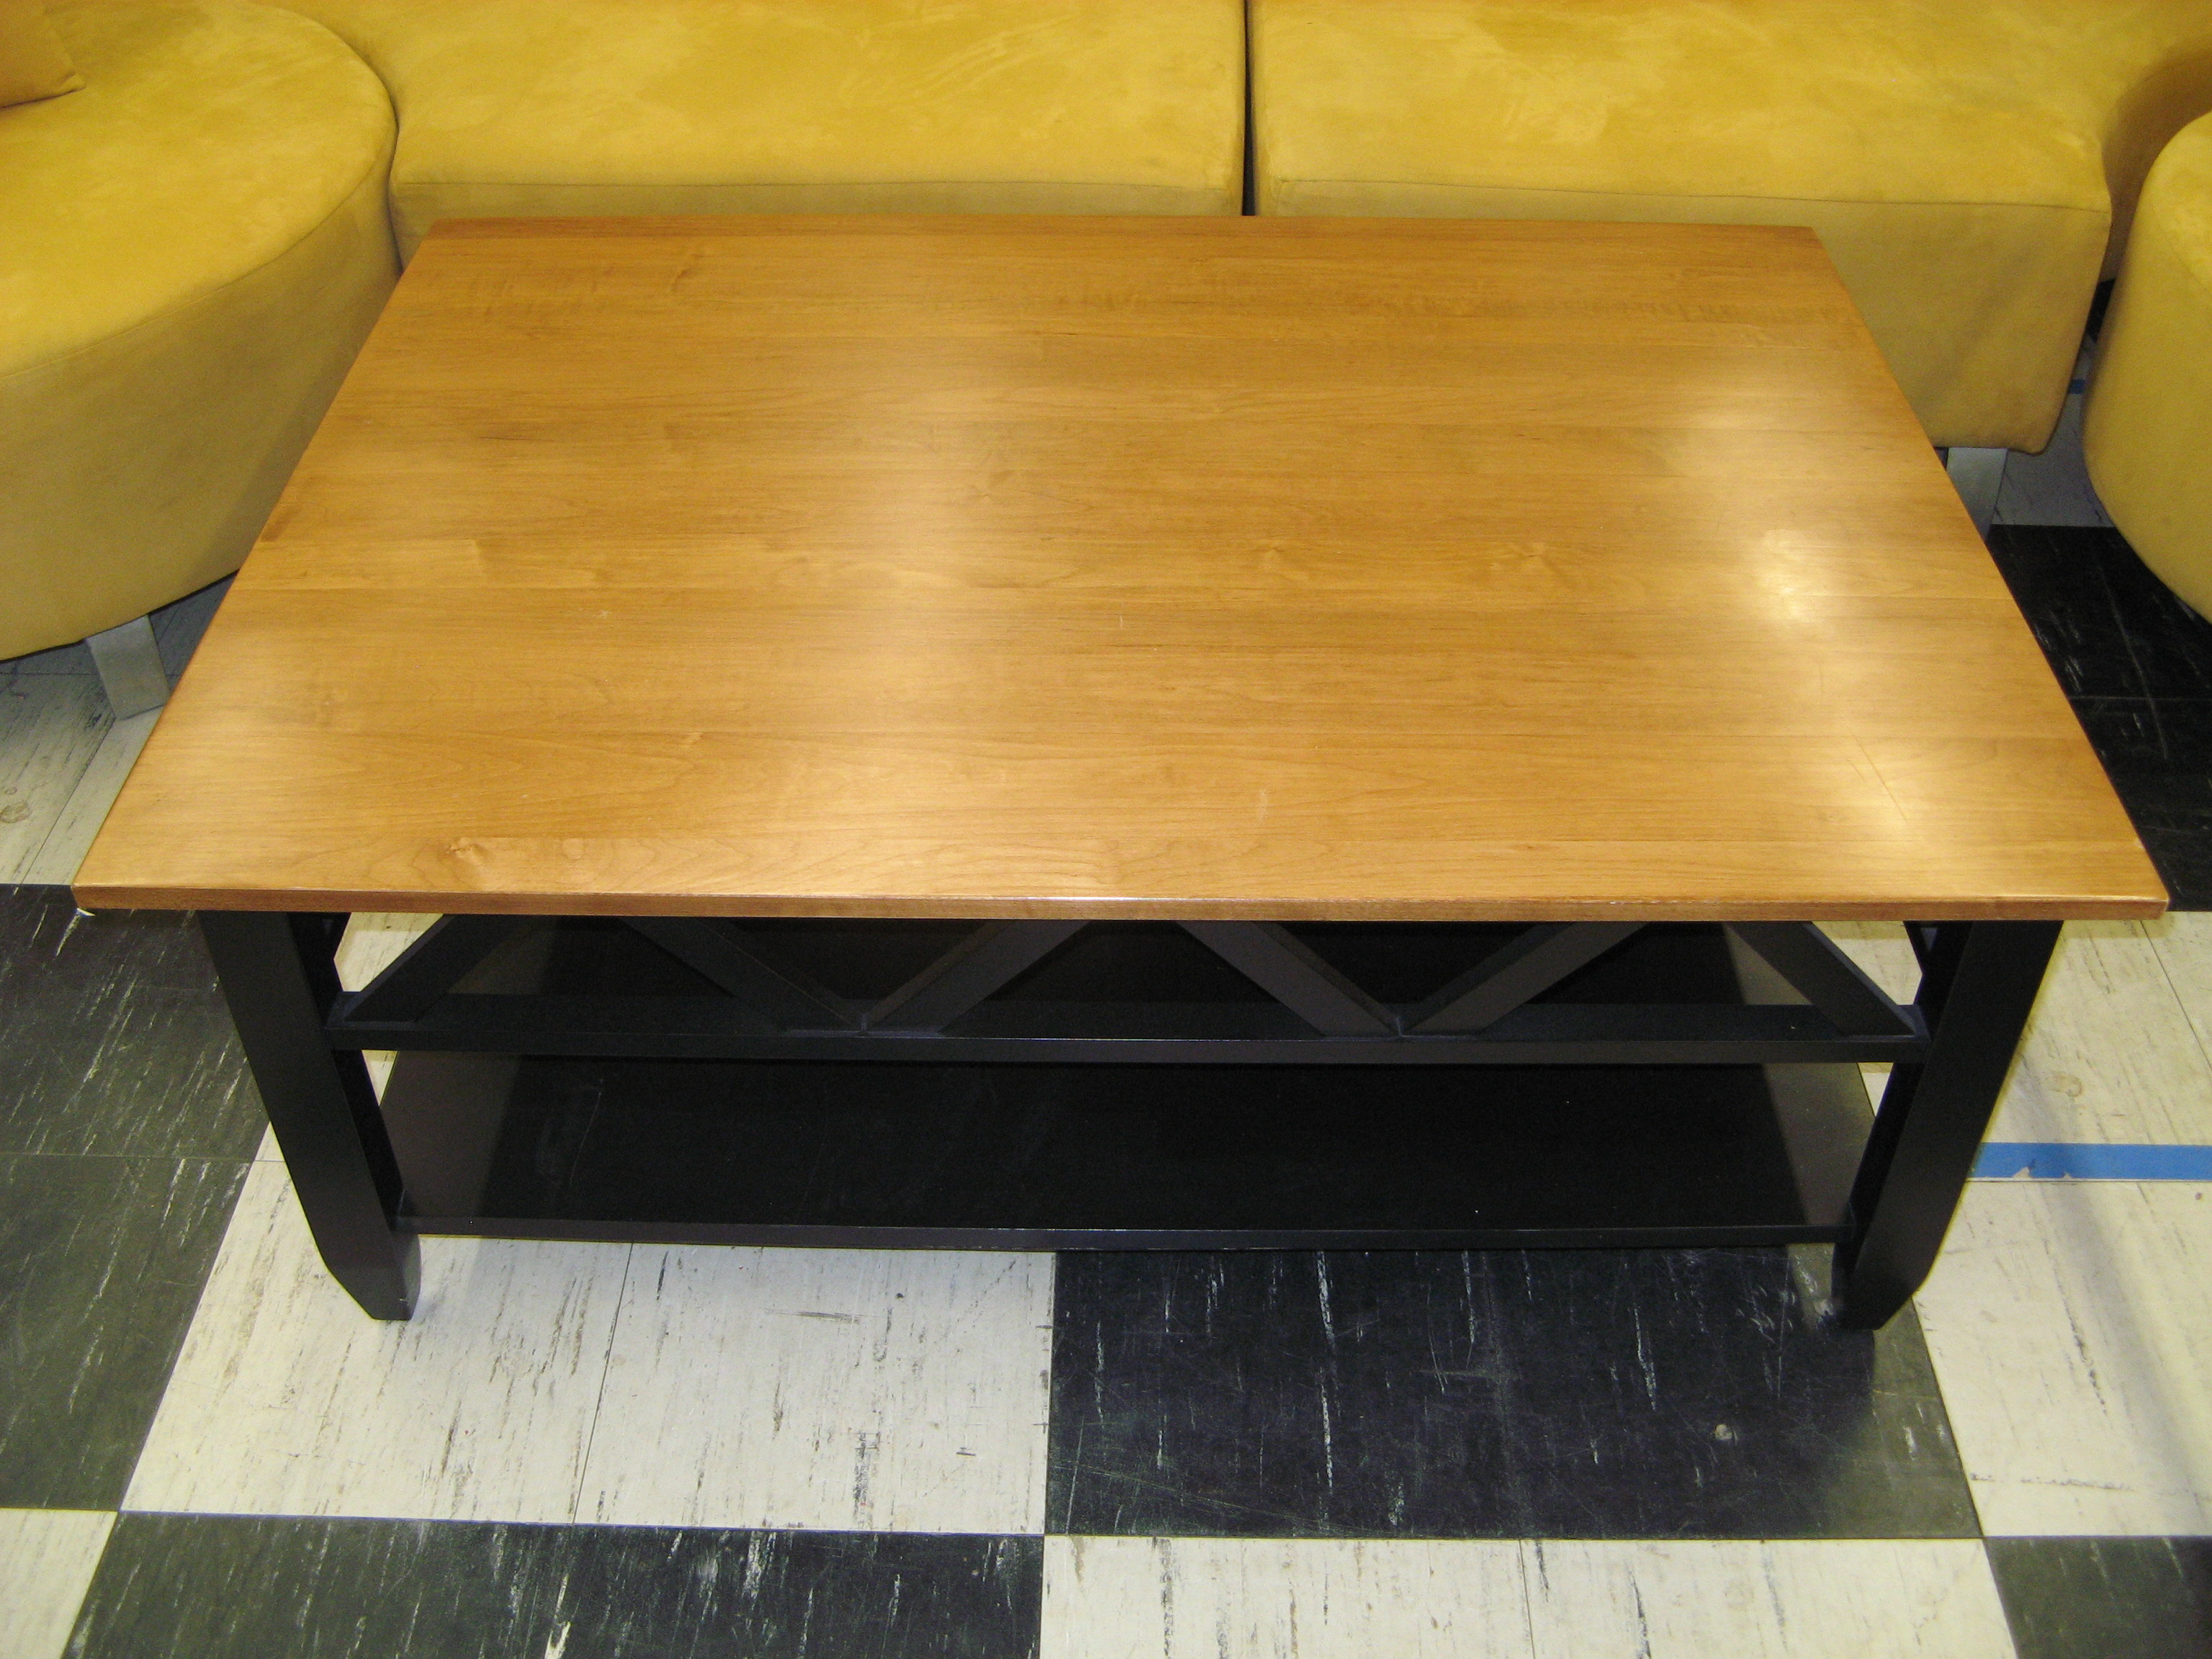 Ethan Allen Coffee Table, Black Painted Base w/ Natural Wood Top